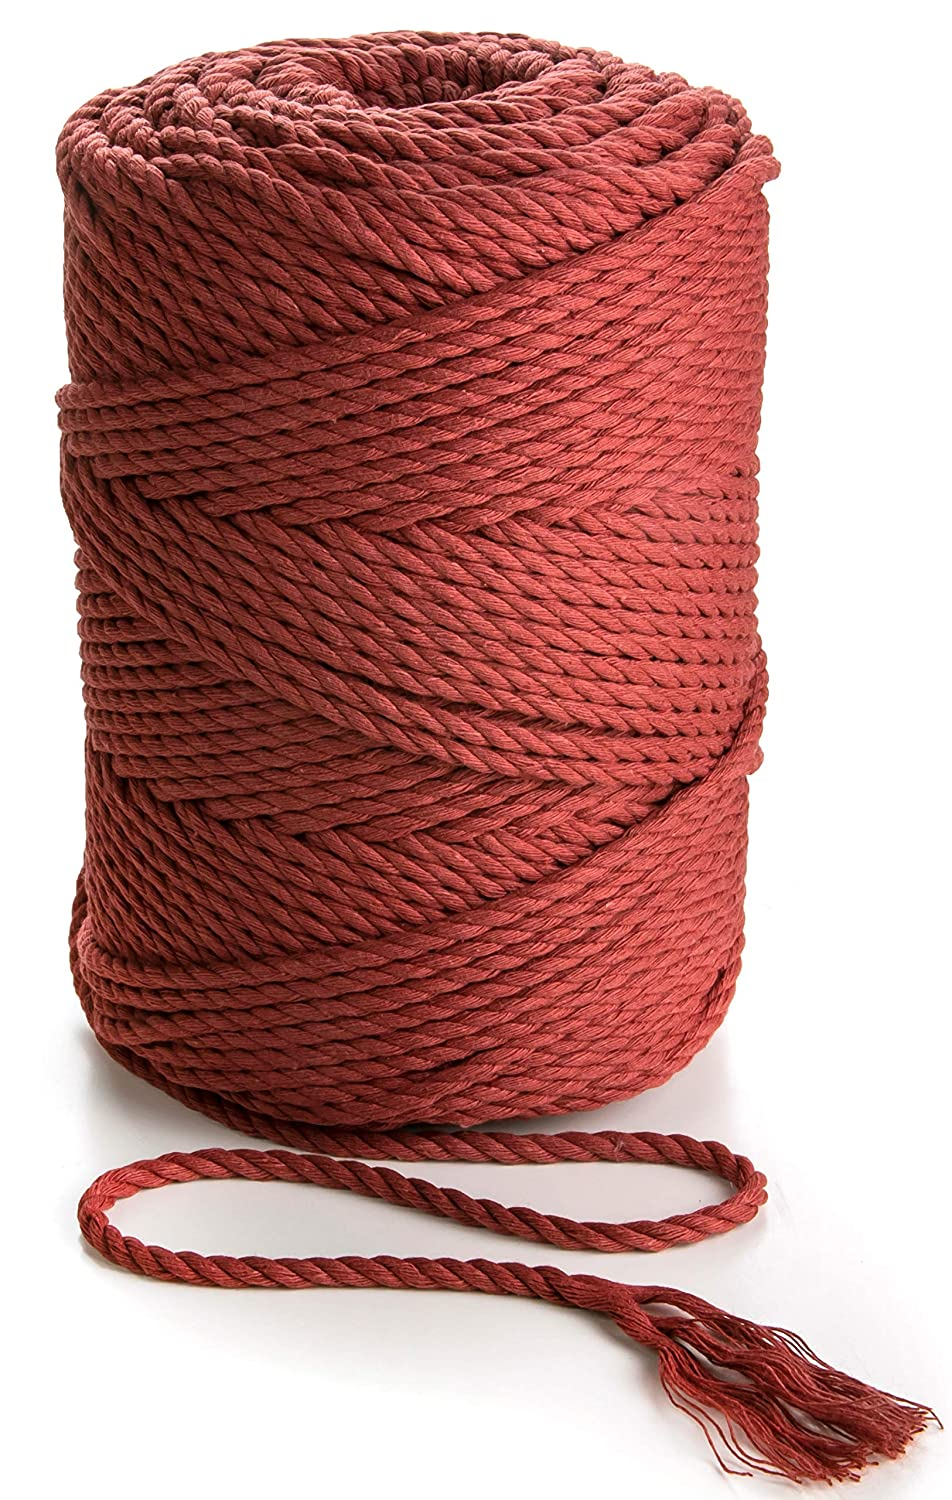 Macrame Cord 4mm Cotton Rope Cinnamon Red 492 feet Soft Cotton Macrame Cord Crafts Cord Bordo Bordo Cinnamon Red